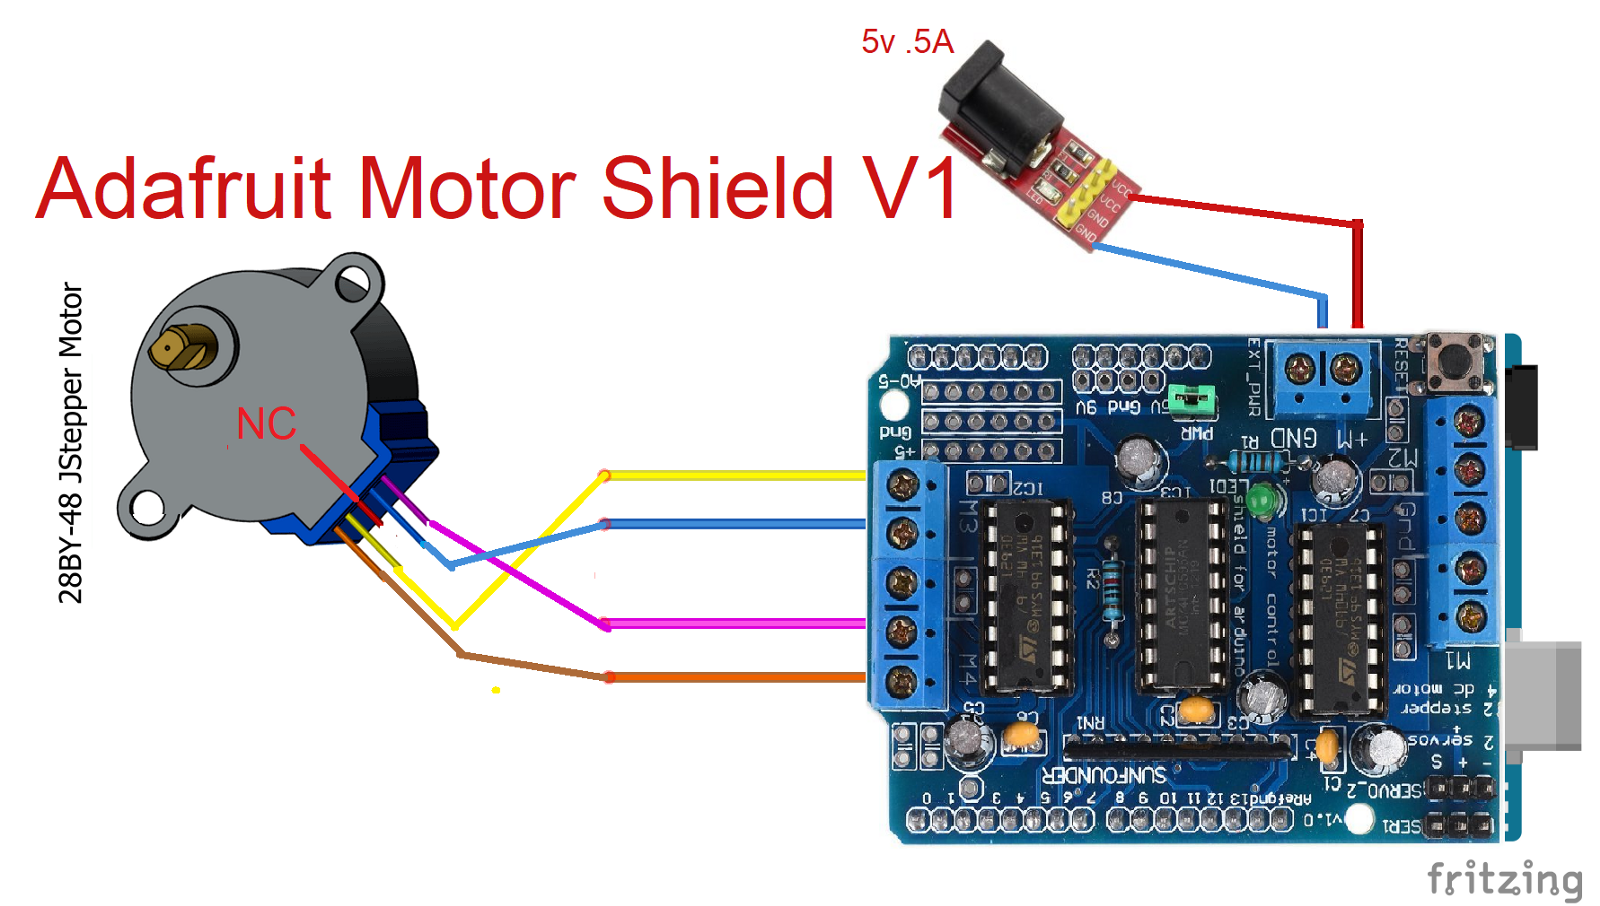 Up there I'm using: Adafruit Motor/Stepper/Servo Shield for Arduino kit — v1.2 & 28BYJ-48 Stepper Motor & Arduino Uno IDE 1.8.5. See comments above for the ...